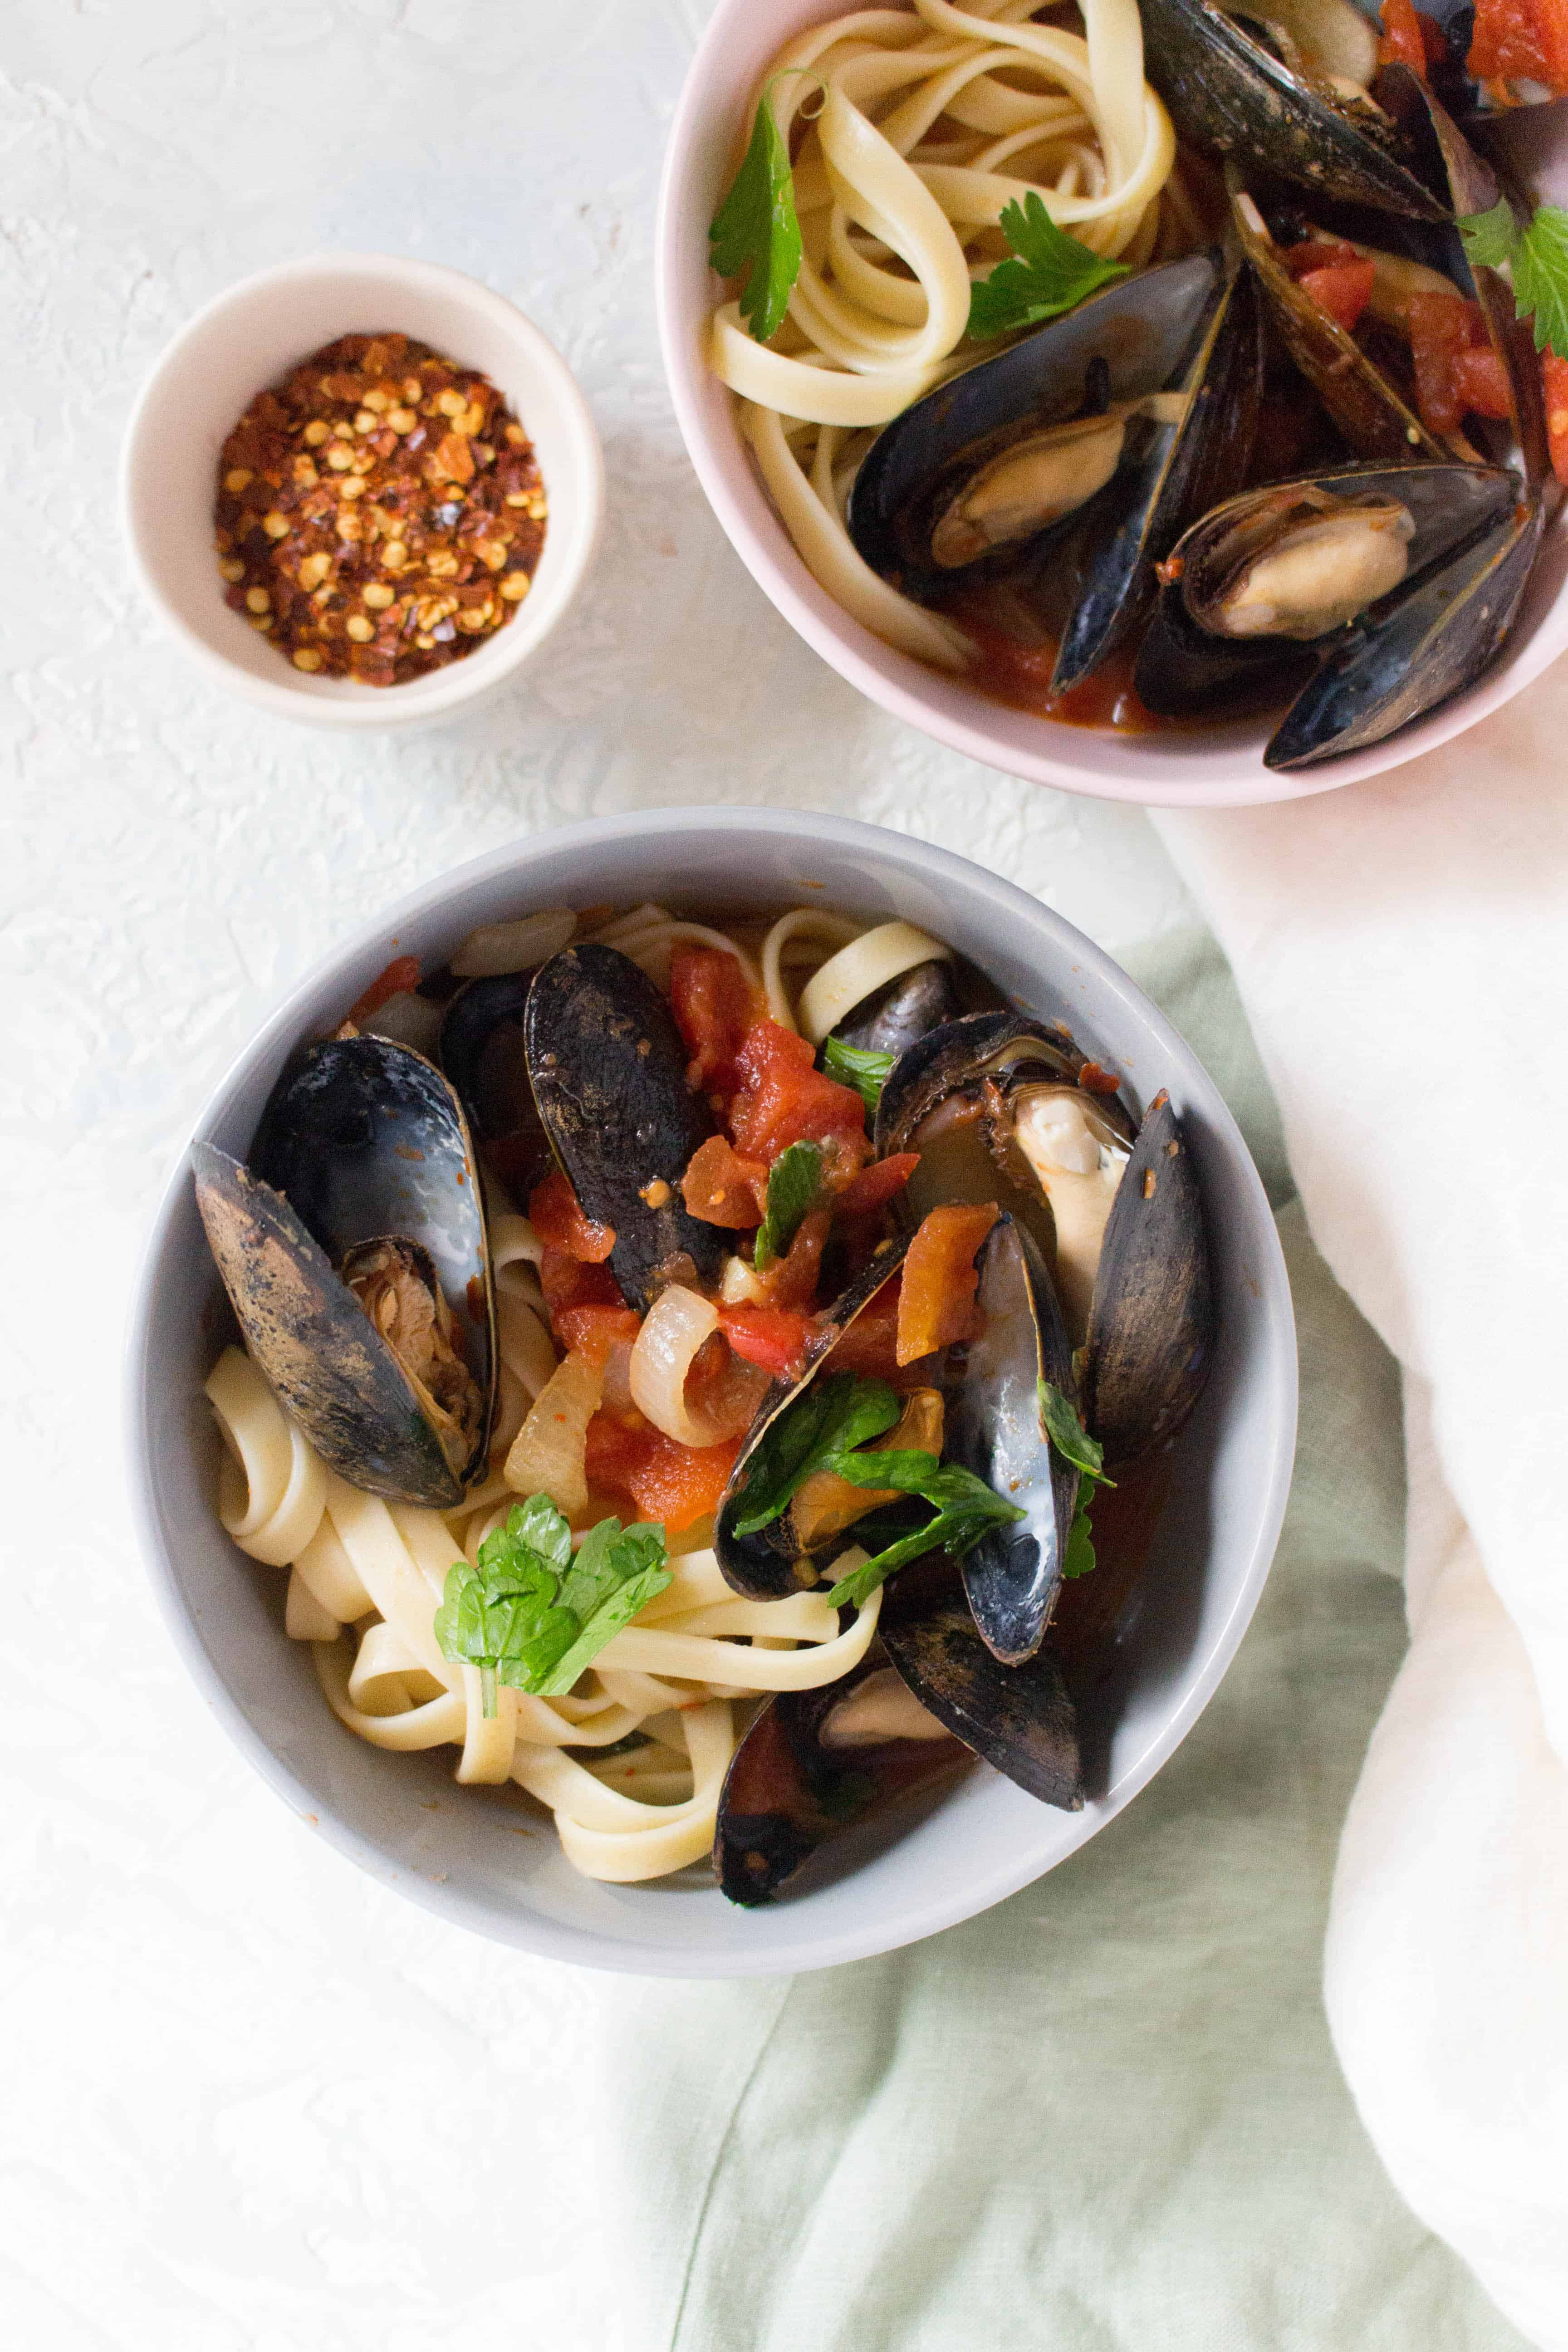 Looking for an easy recipe that looks impressive but takes little to no effort to put together? This Spicy Steamed Mussels is perfect!